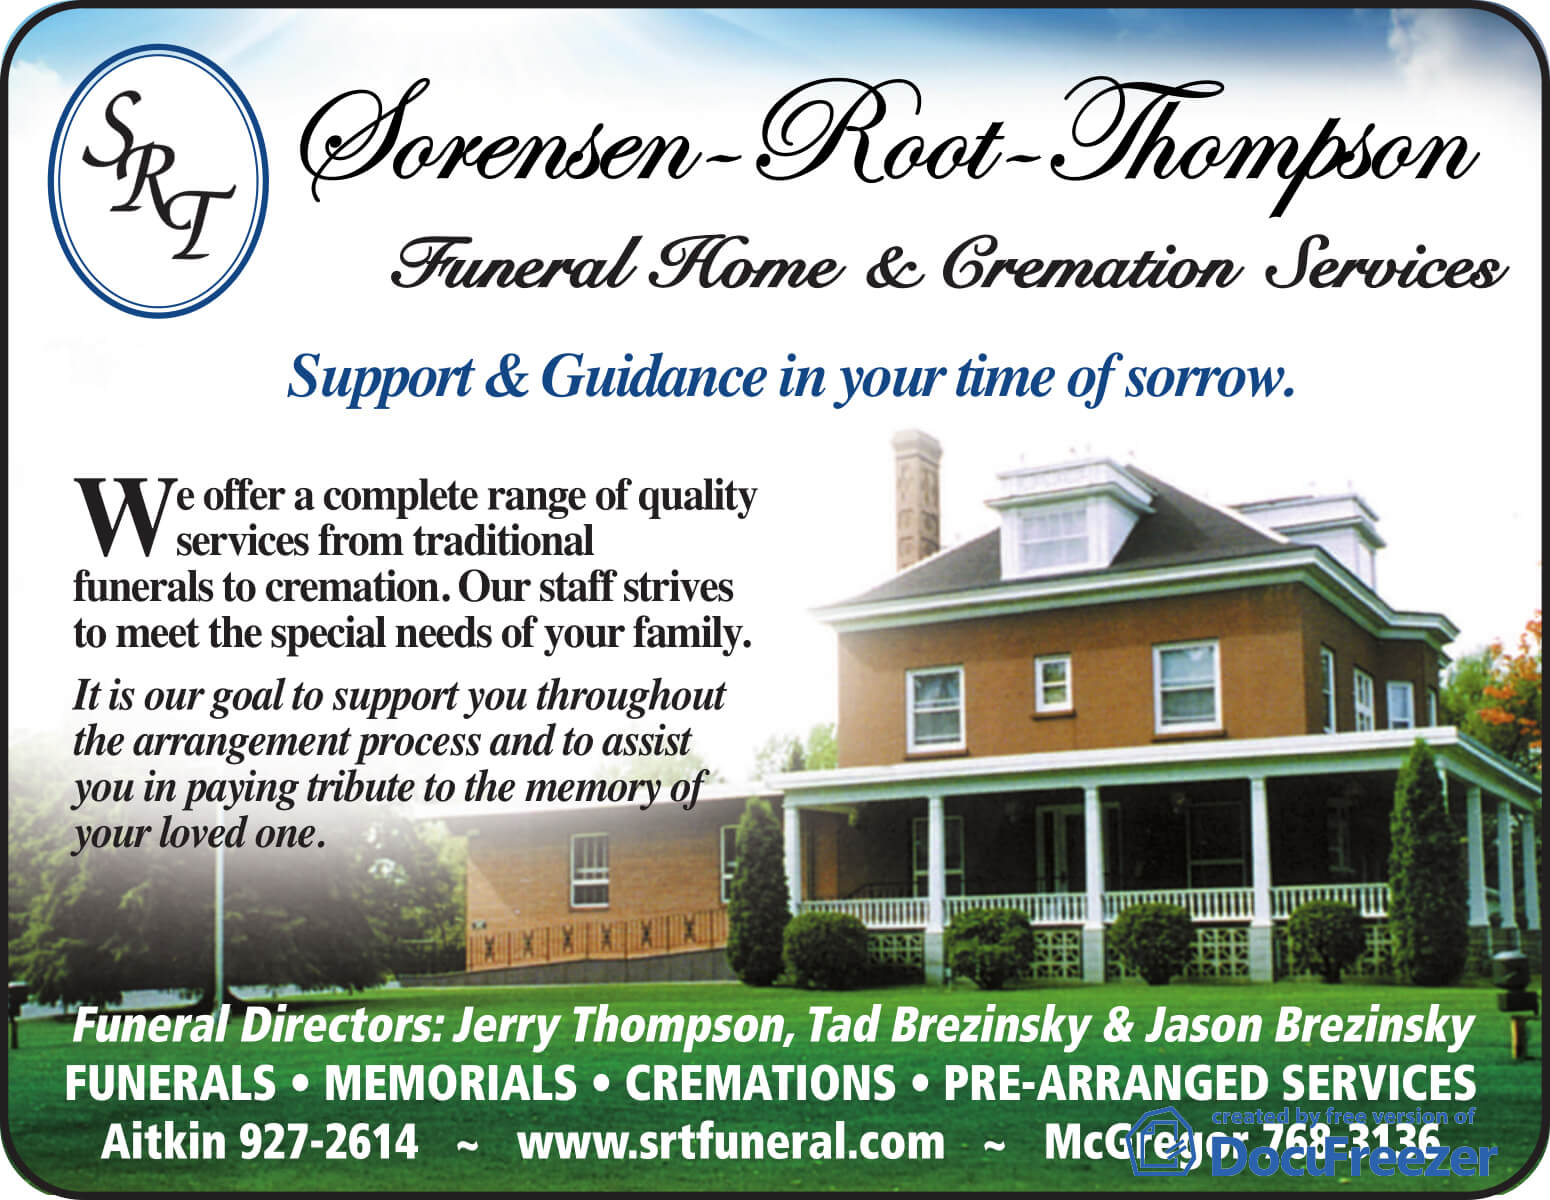 FAQ | Sorensen-Root-Thompson Funeral Home | Aitkin MN